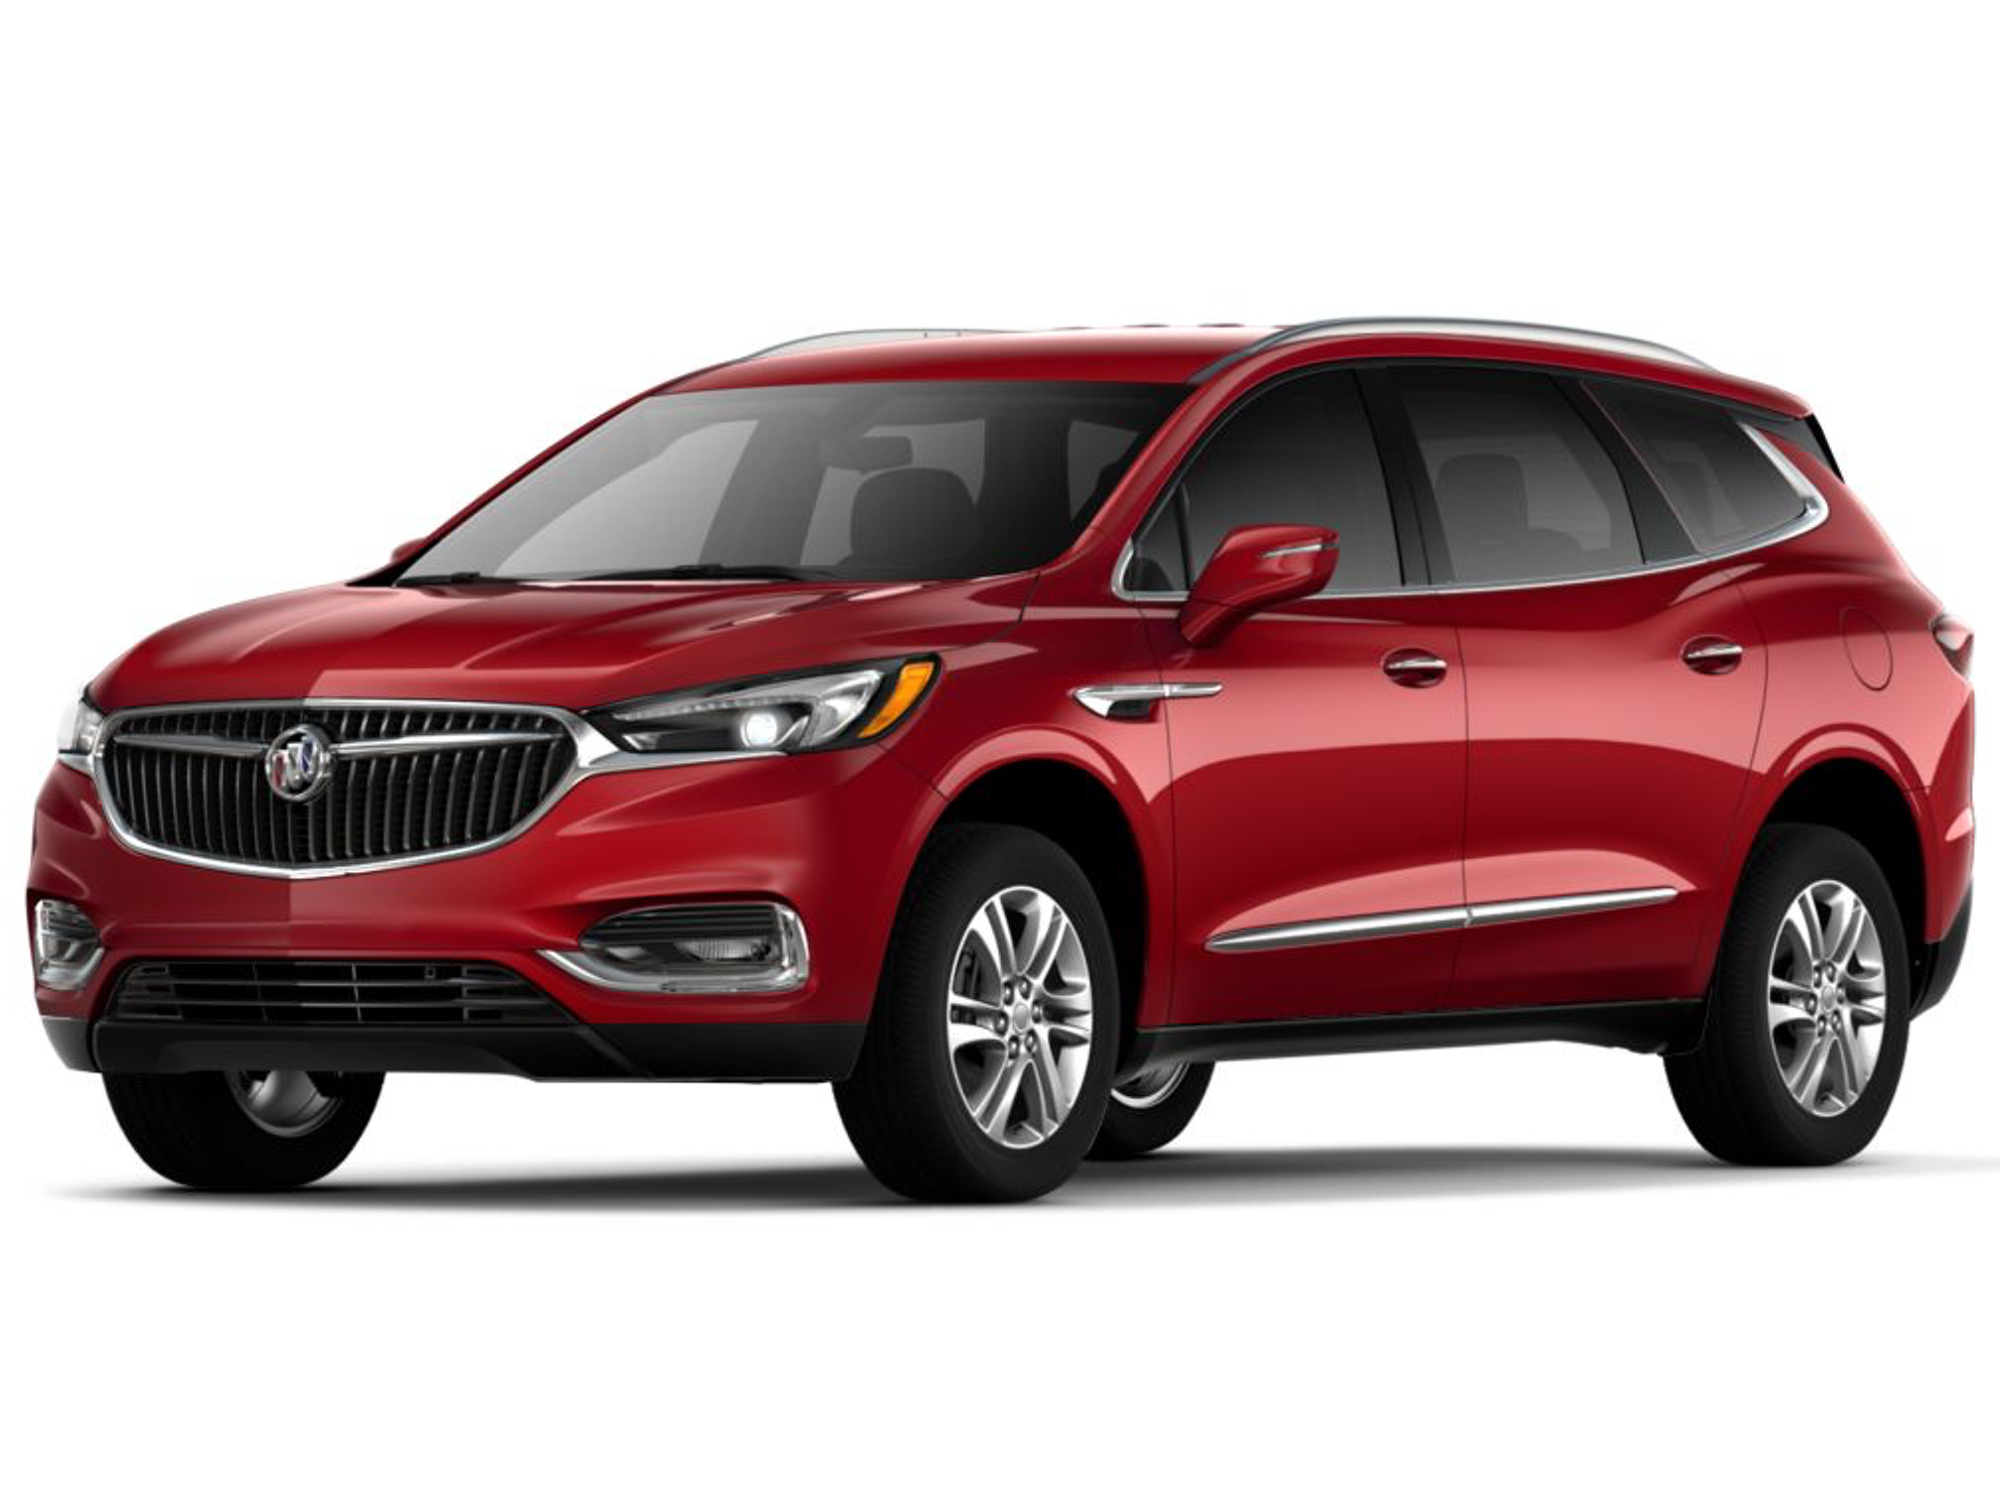 2019 Buick Enclave Exterior Colors | Gm Authority 2022 Buick Enclave Price, Pictures, Brochure